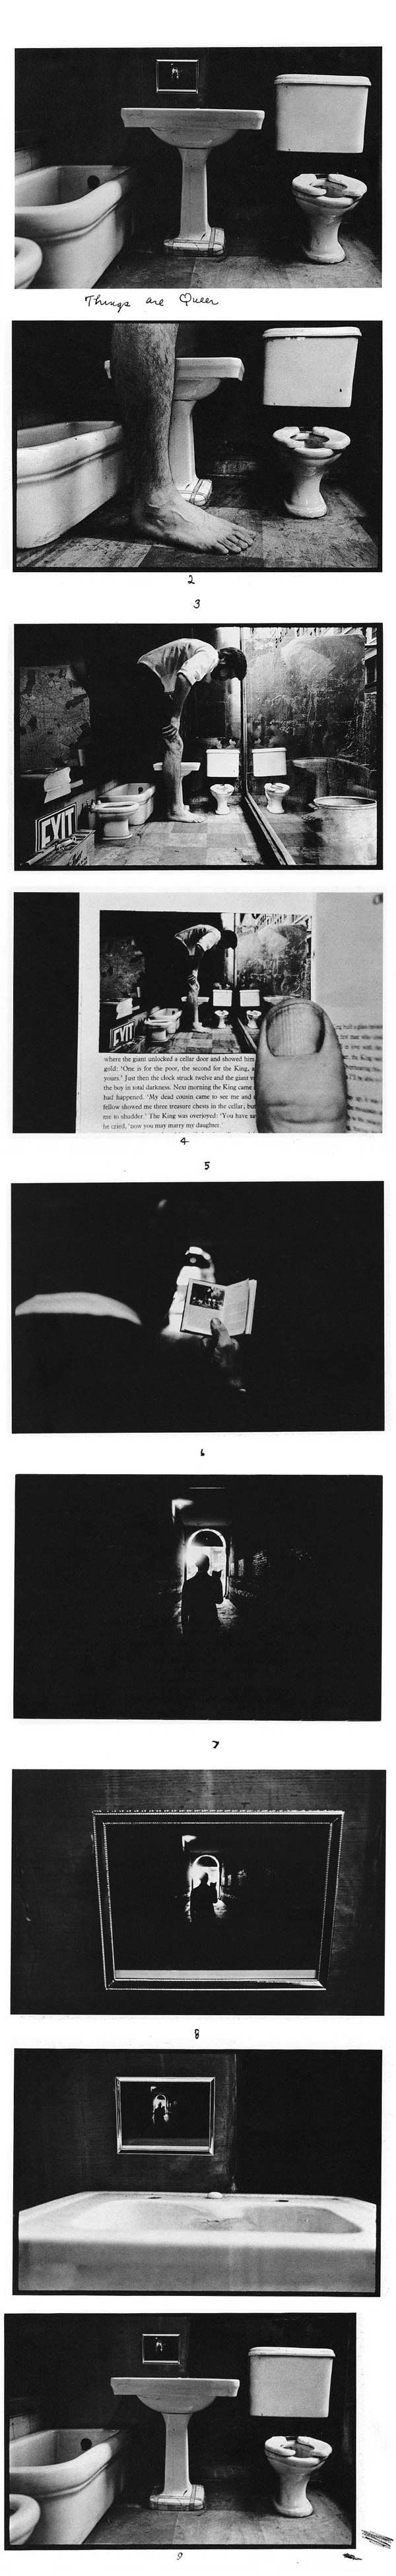 Things are Queer, 1973 - Duane Michals